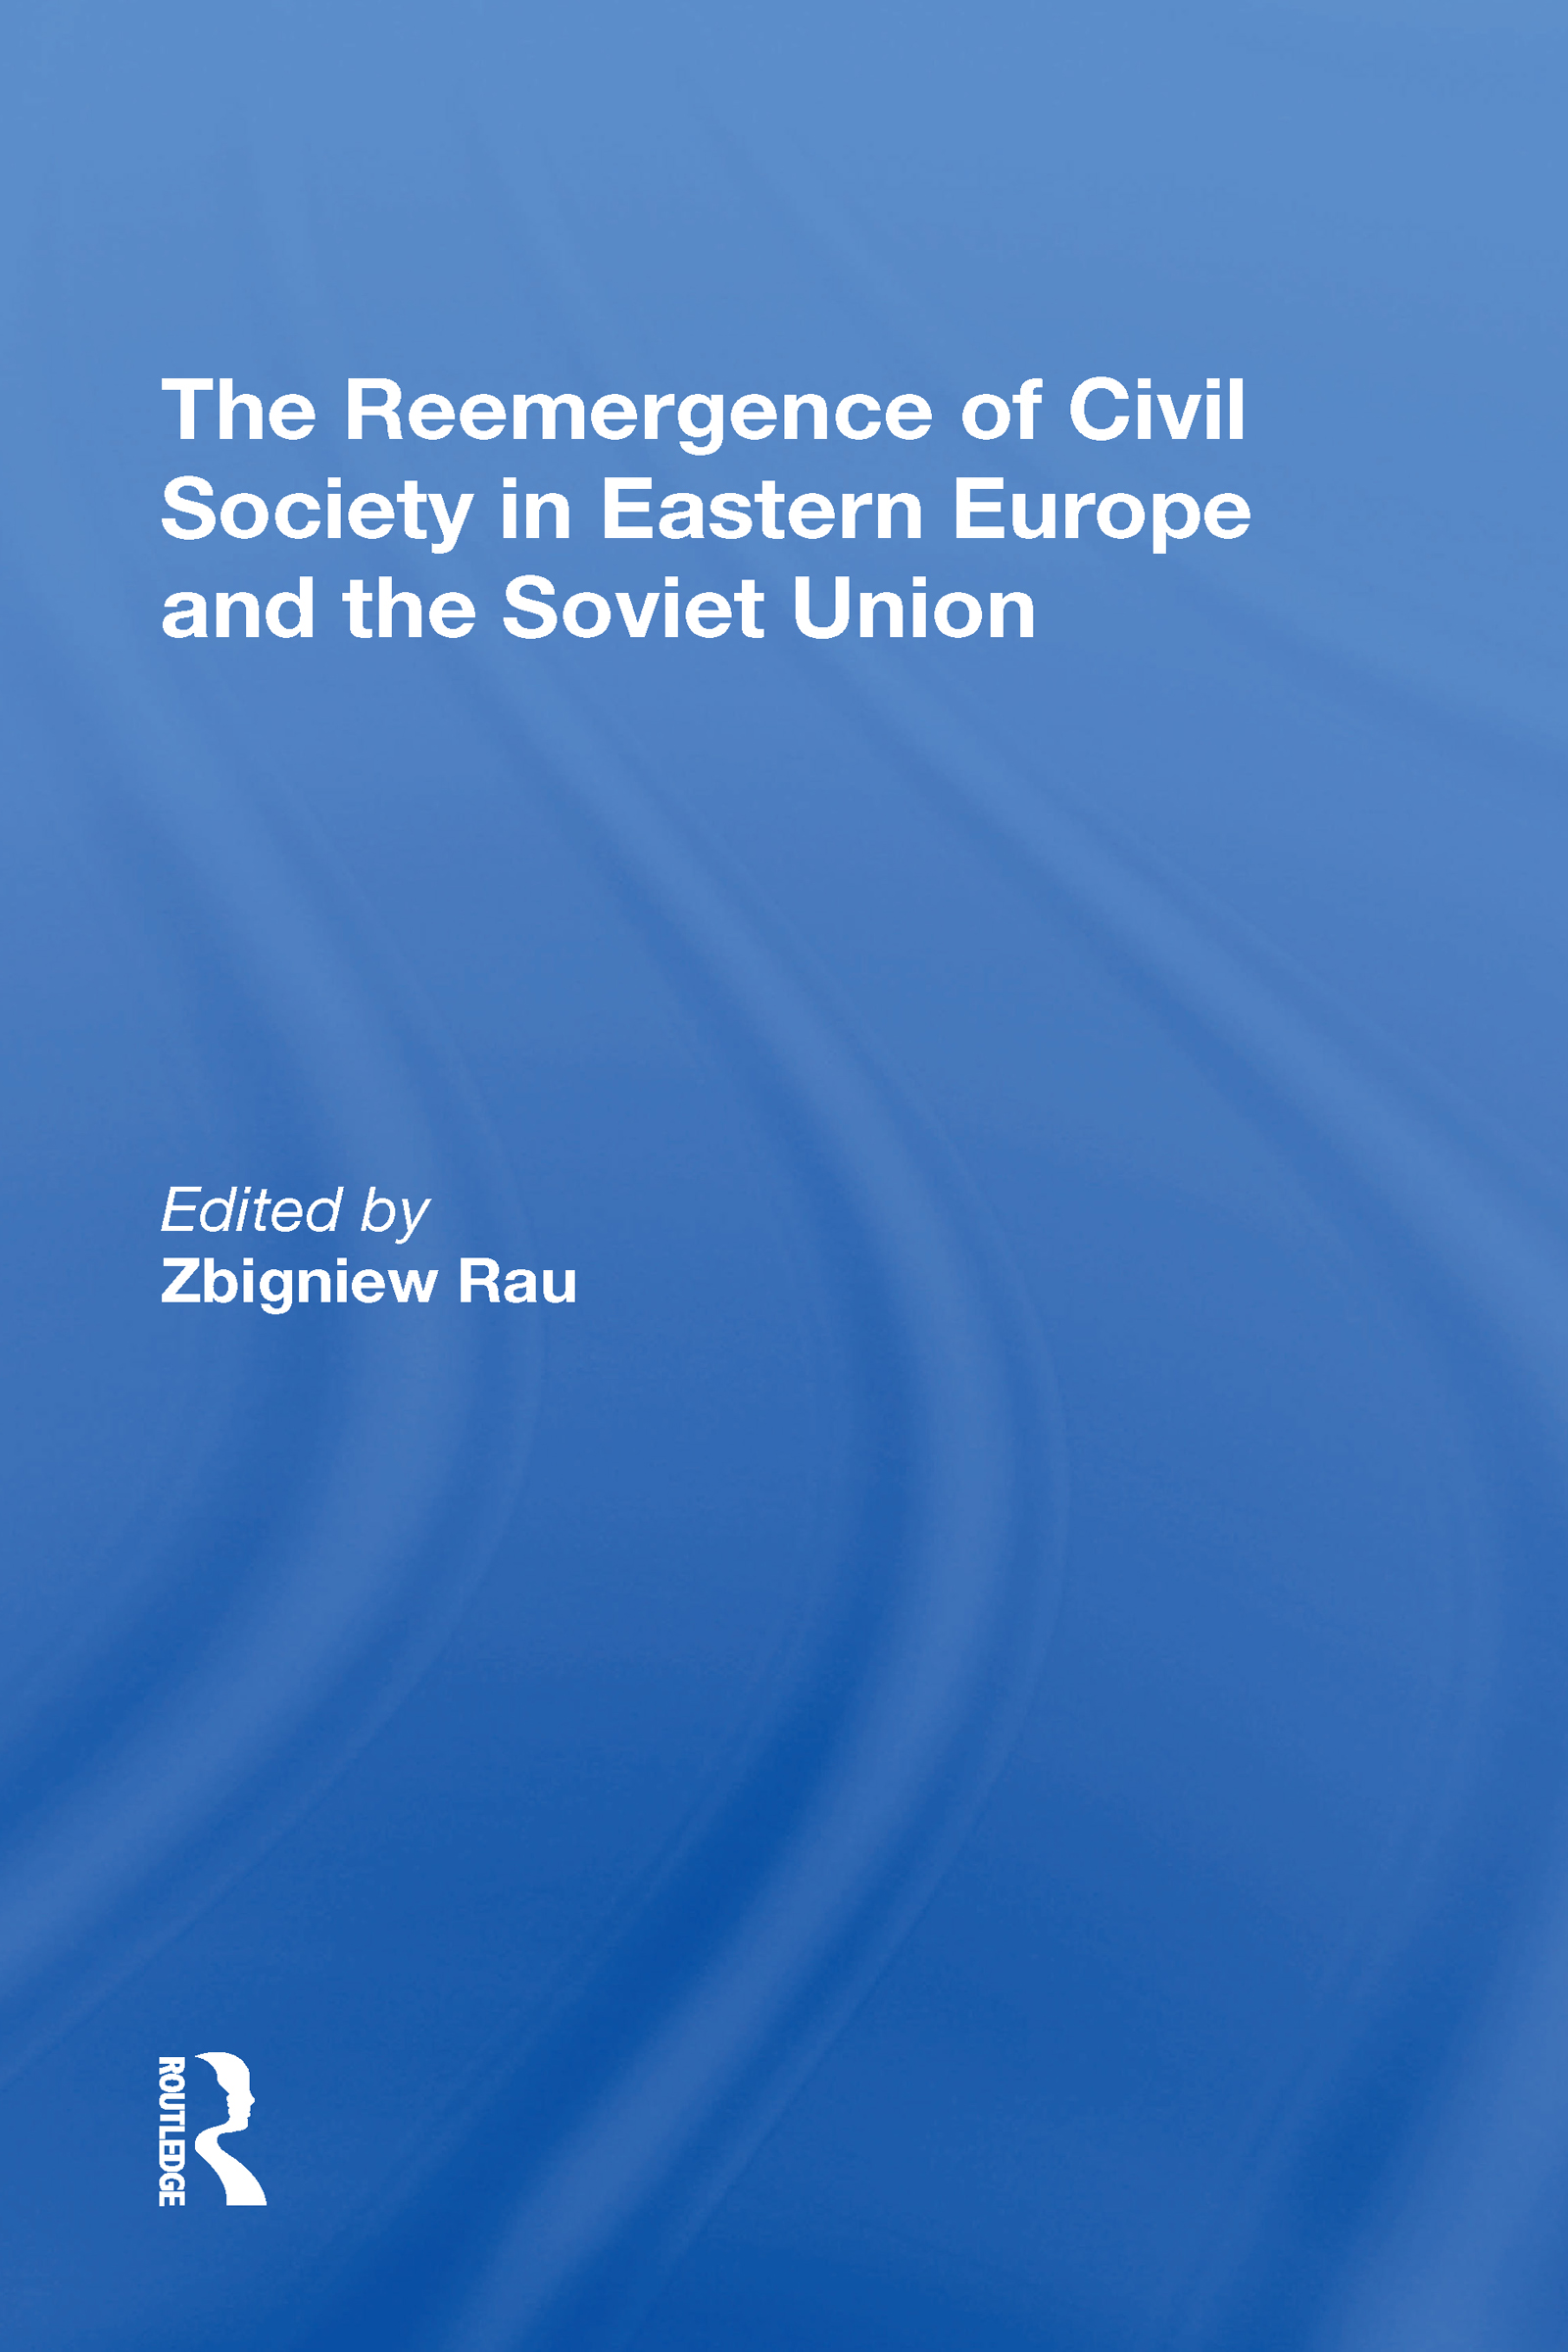 The Reemergence Of Civil Society In Eastern Europe And The Soviet Union